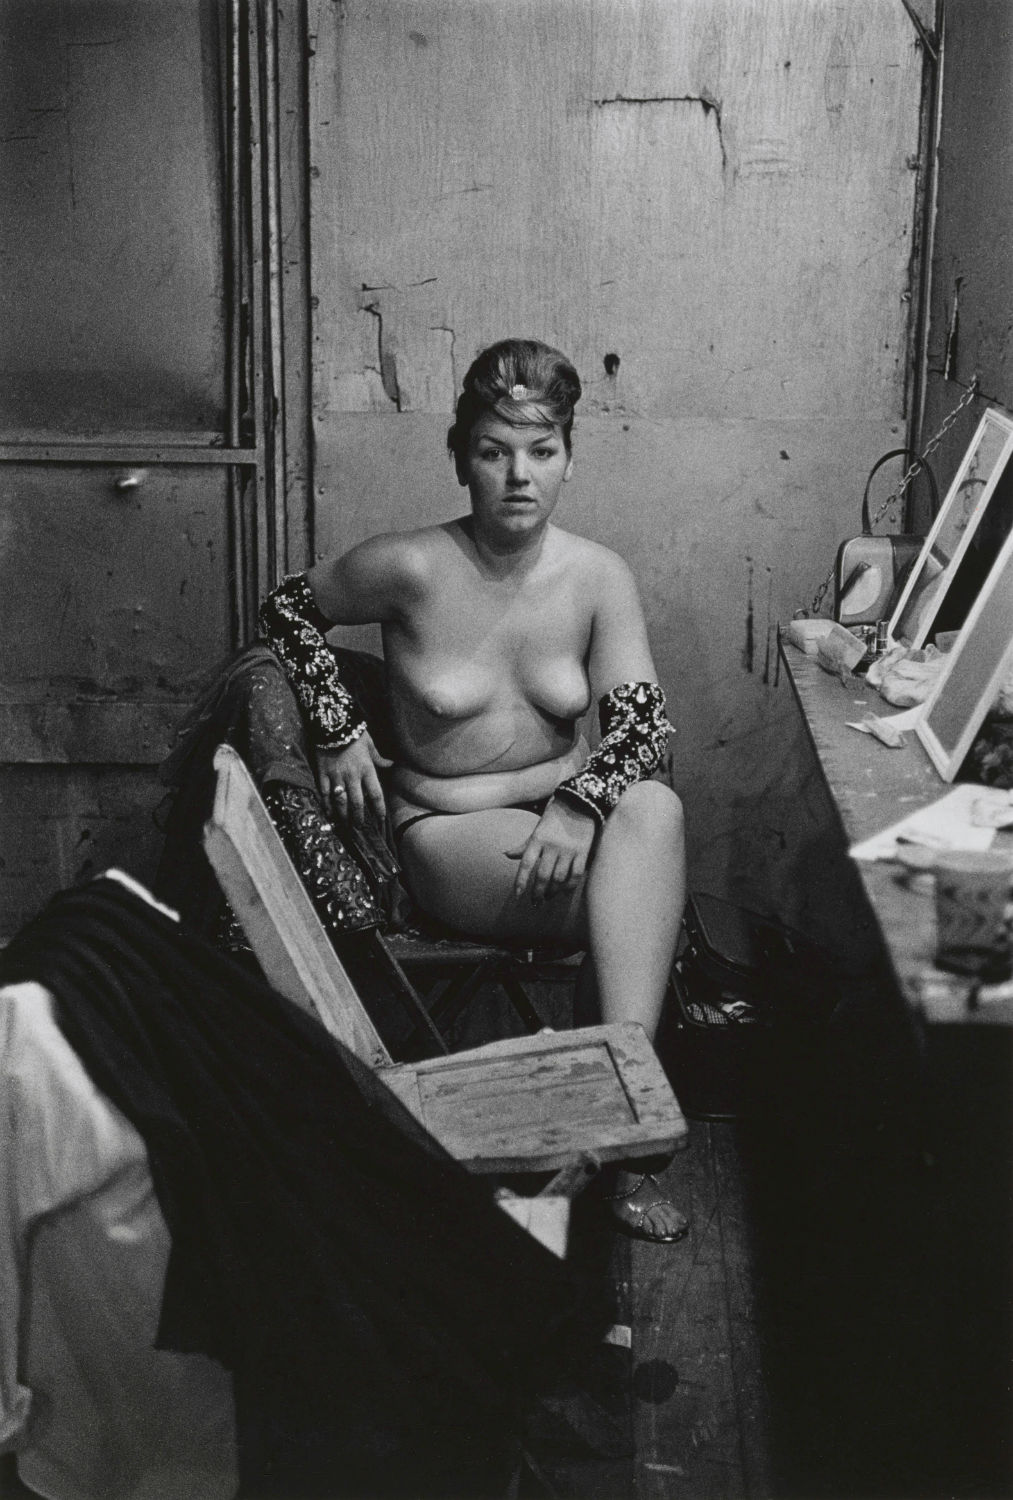 11.-Stripper-with-bare-breasts-sitting-in-her-dressing-room-Atlantic-City-N.J.-1961